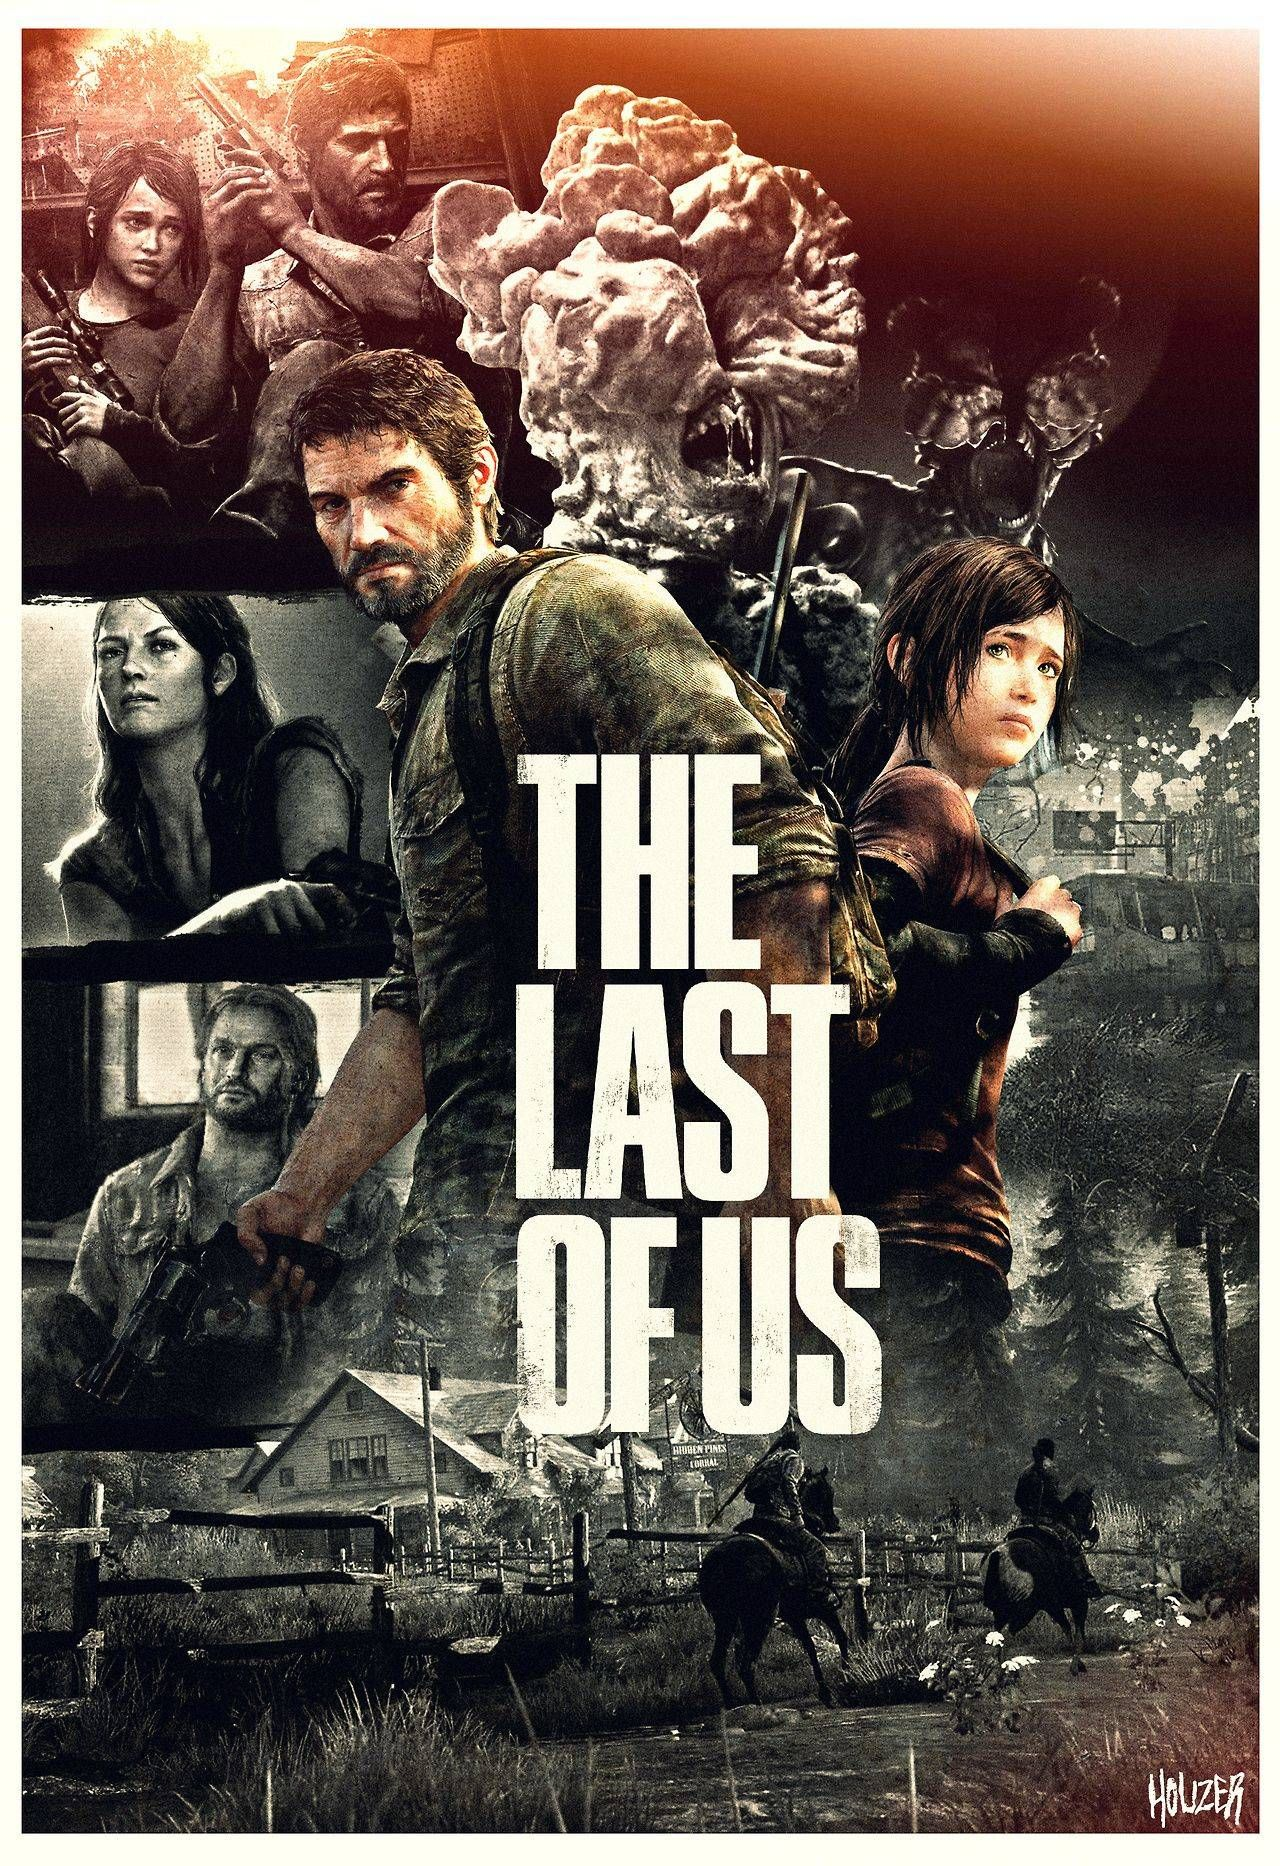 My Poster Art For The Last Of Us Personajes De Videojuegos Videojuegos Ps4 Games Videojuegos